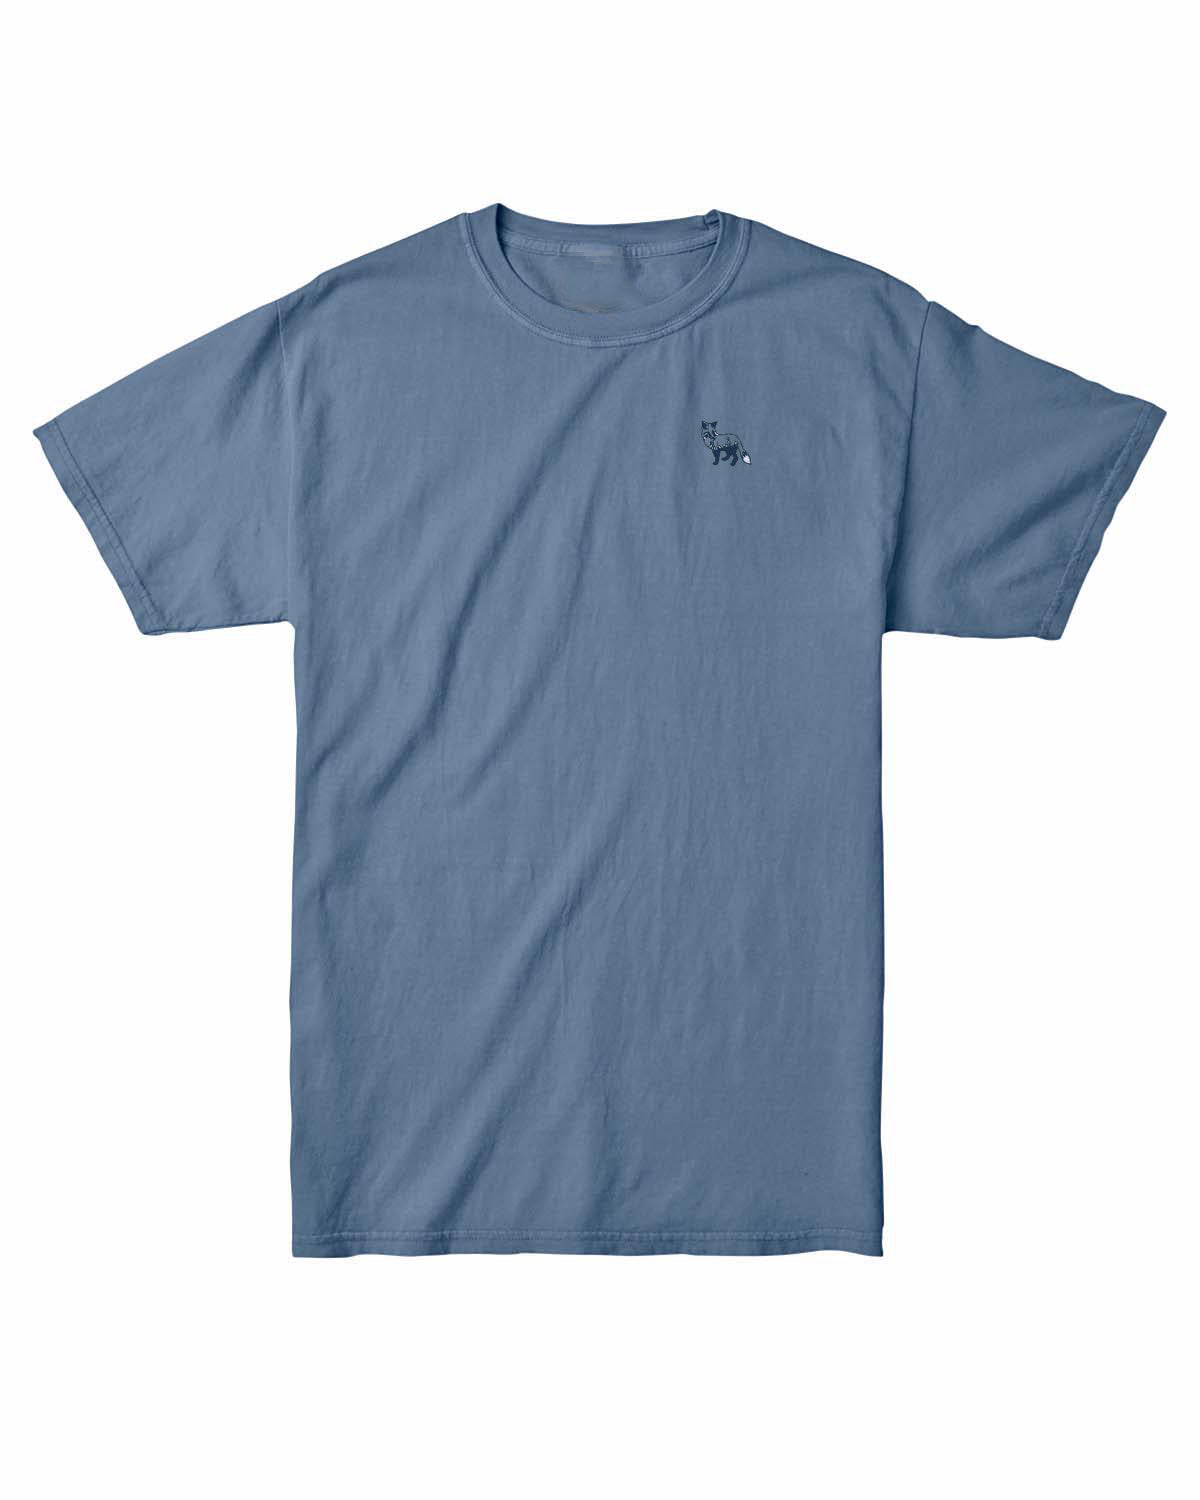 Charlee Tee - Washed Blue